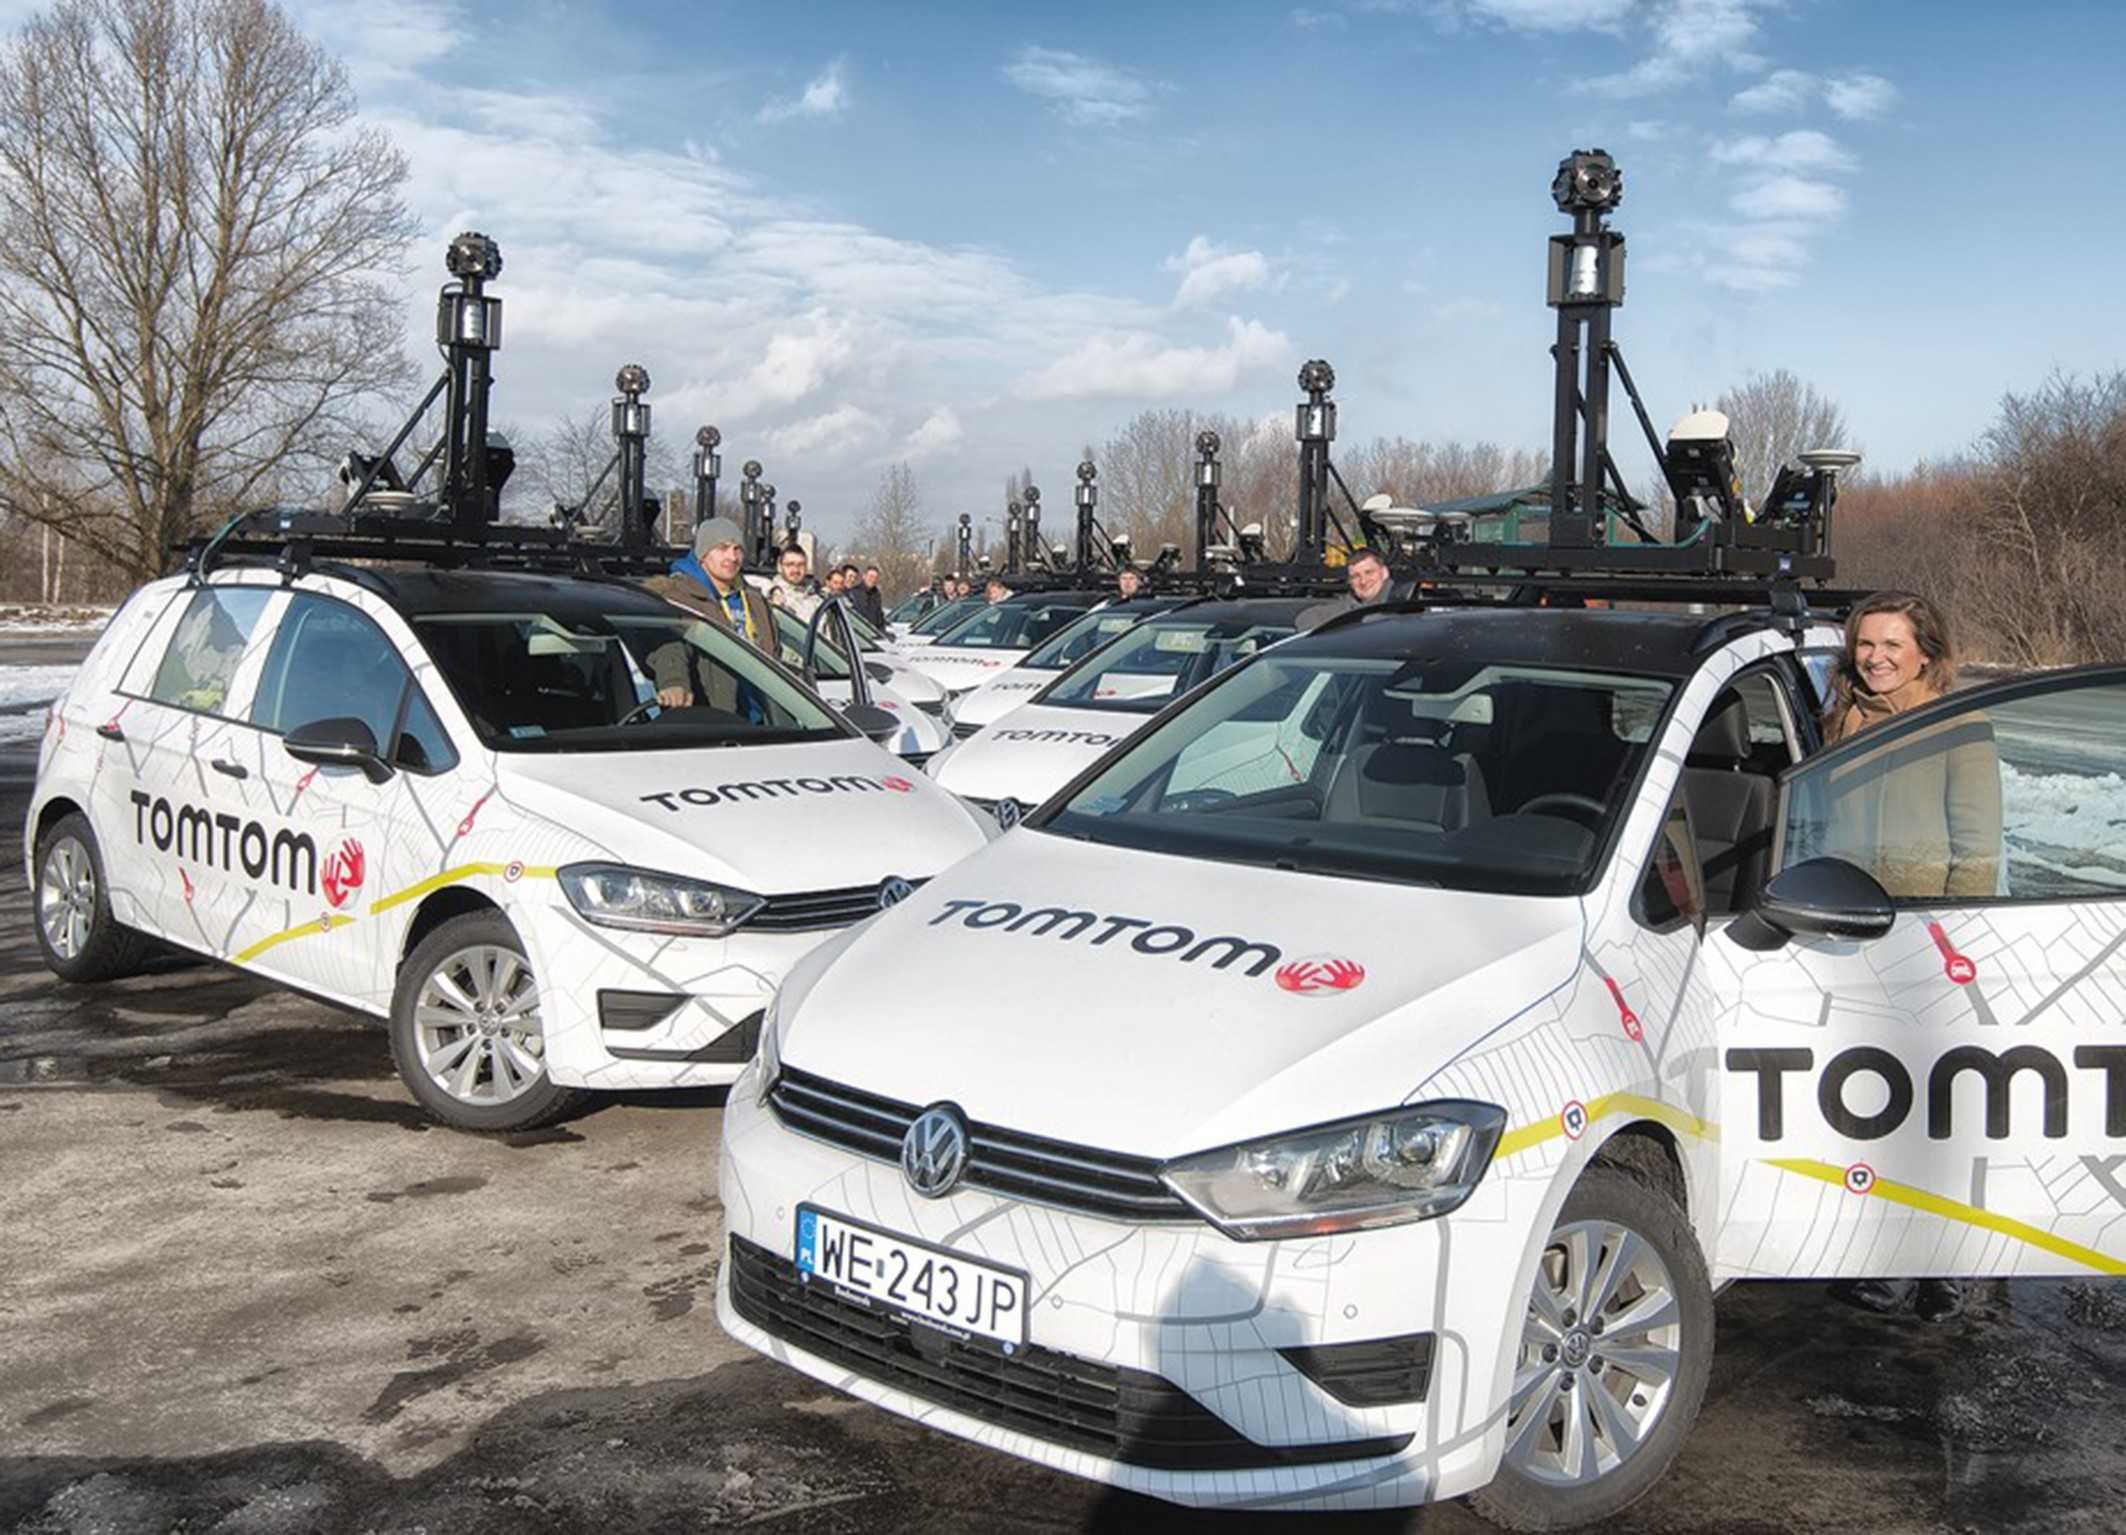 A fleet of vehicles from Bosch/TomTom are creating multilayered maps for autonomous driving.